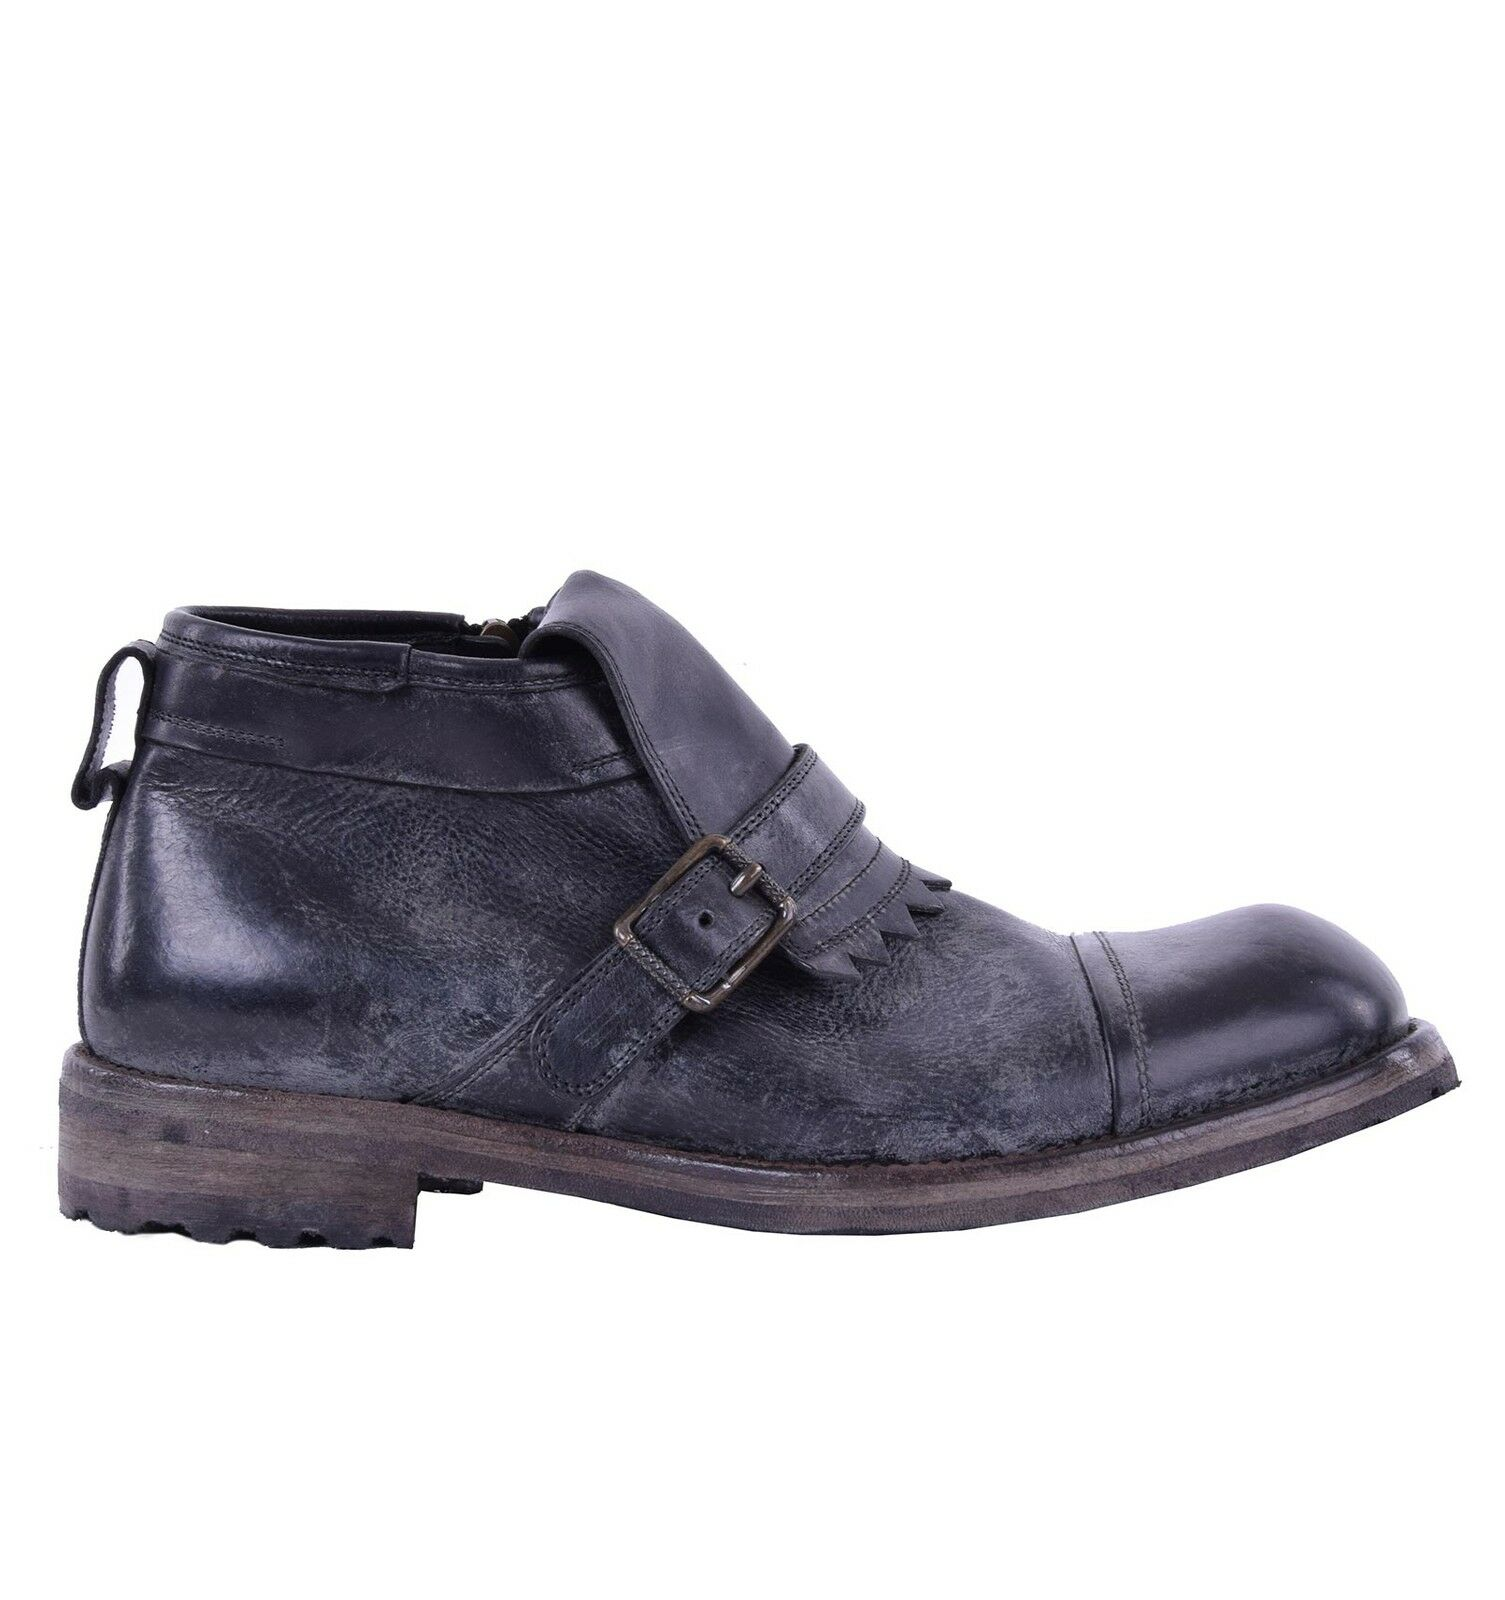 Dolce & Gabbana Distressed Ankle Boots SIRACUSA Black With Buckle Boots 0505